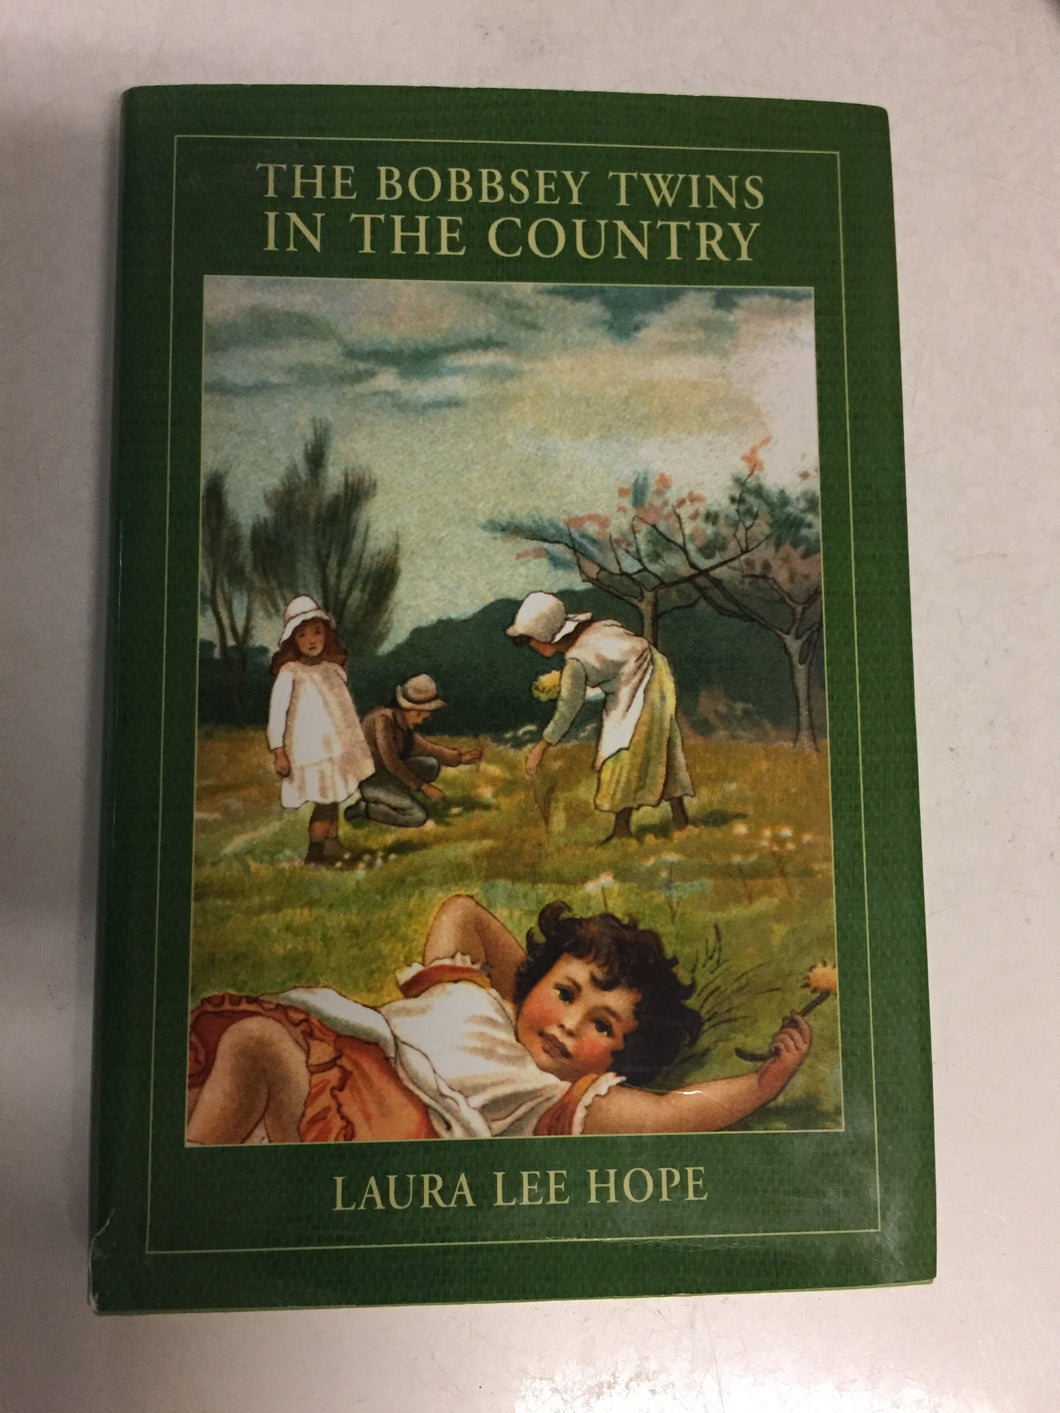 The Bobbsey Twins in the Country - Slickcatbooks